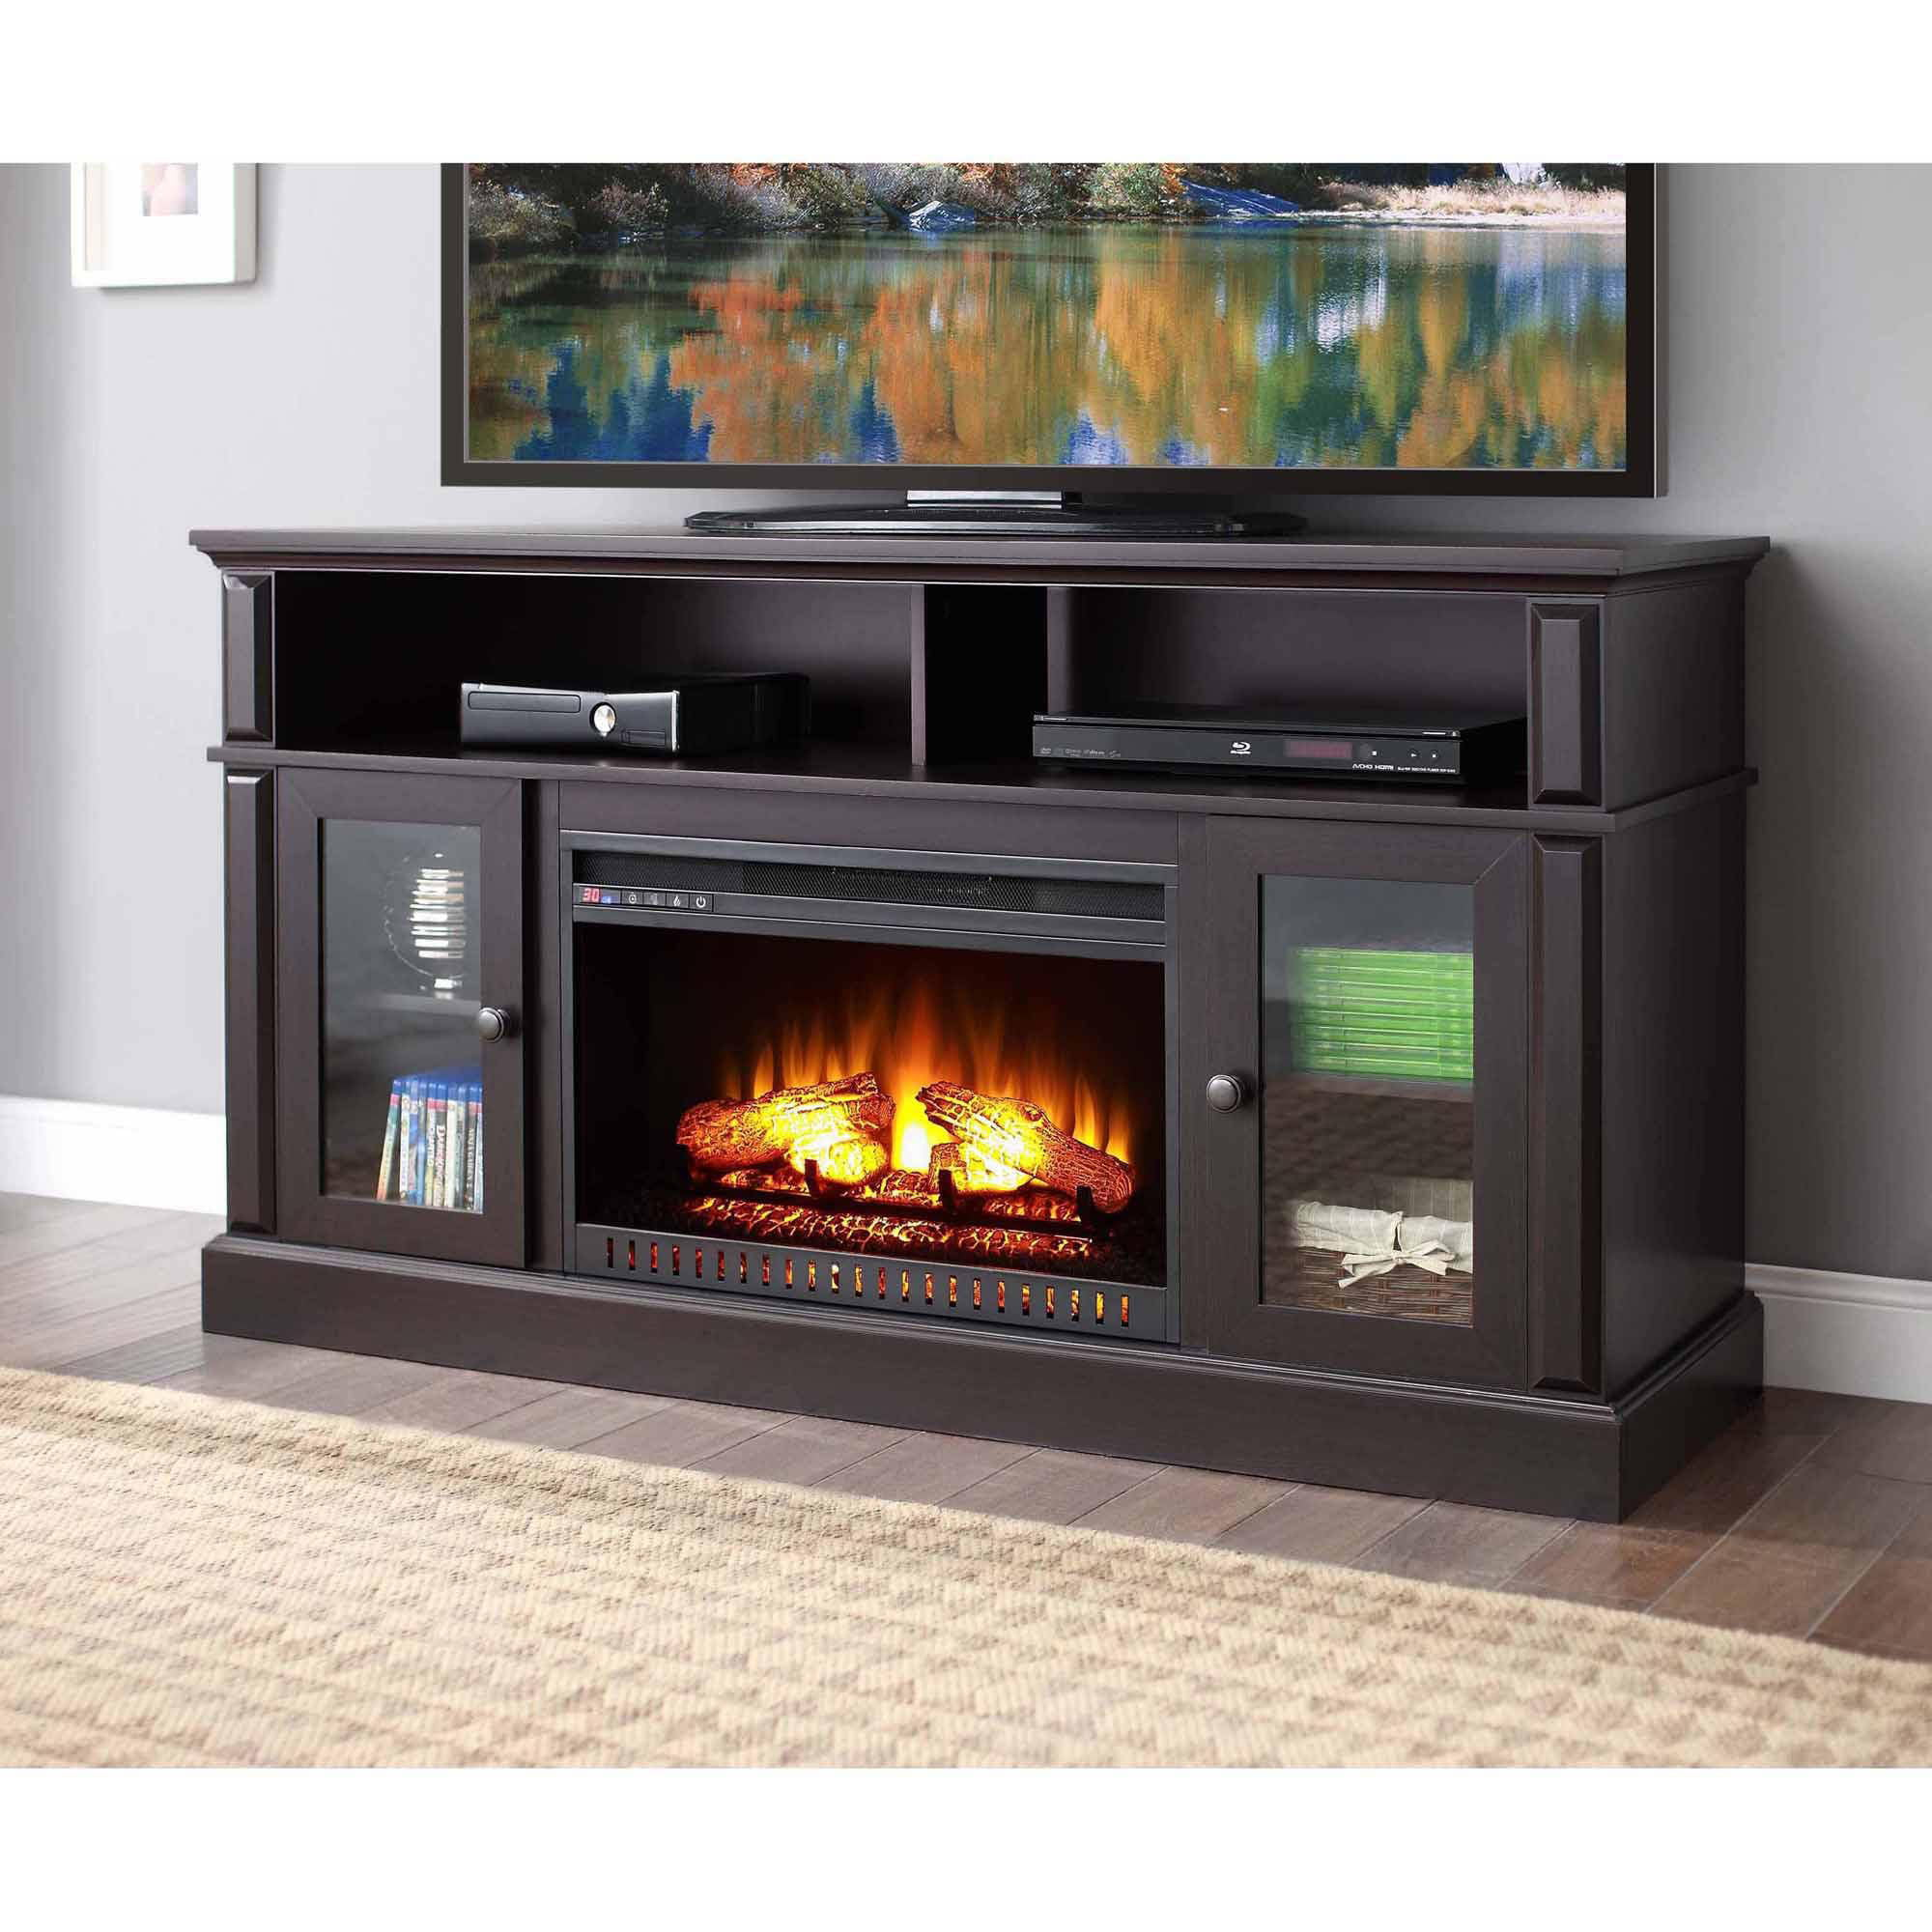 Whalen barston media fireplace for tvs up to 70 multiple finishes whalen barston media fireplace for tvs up to 70 multiple finishes walmart solutioingenieria Gallery